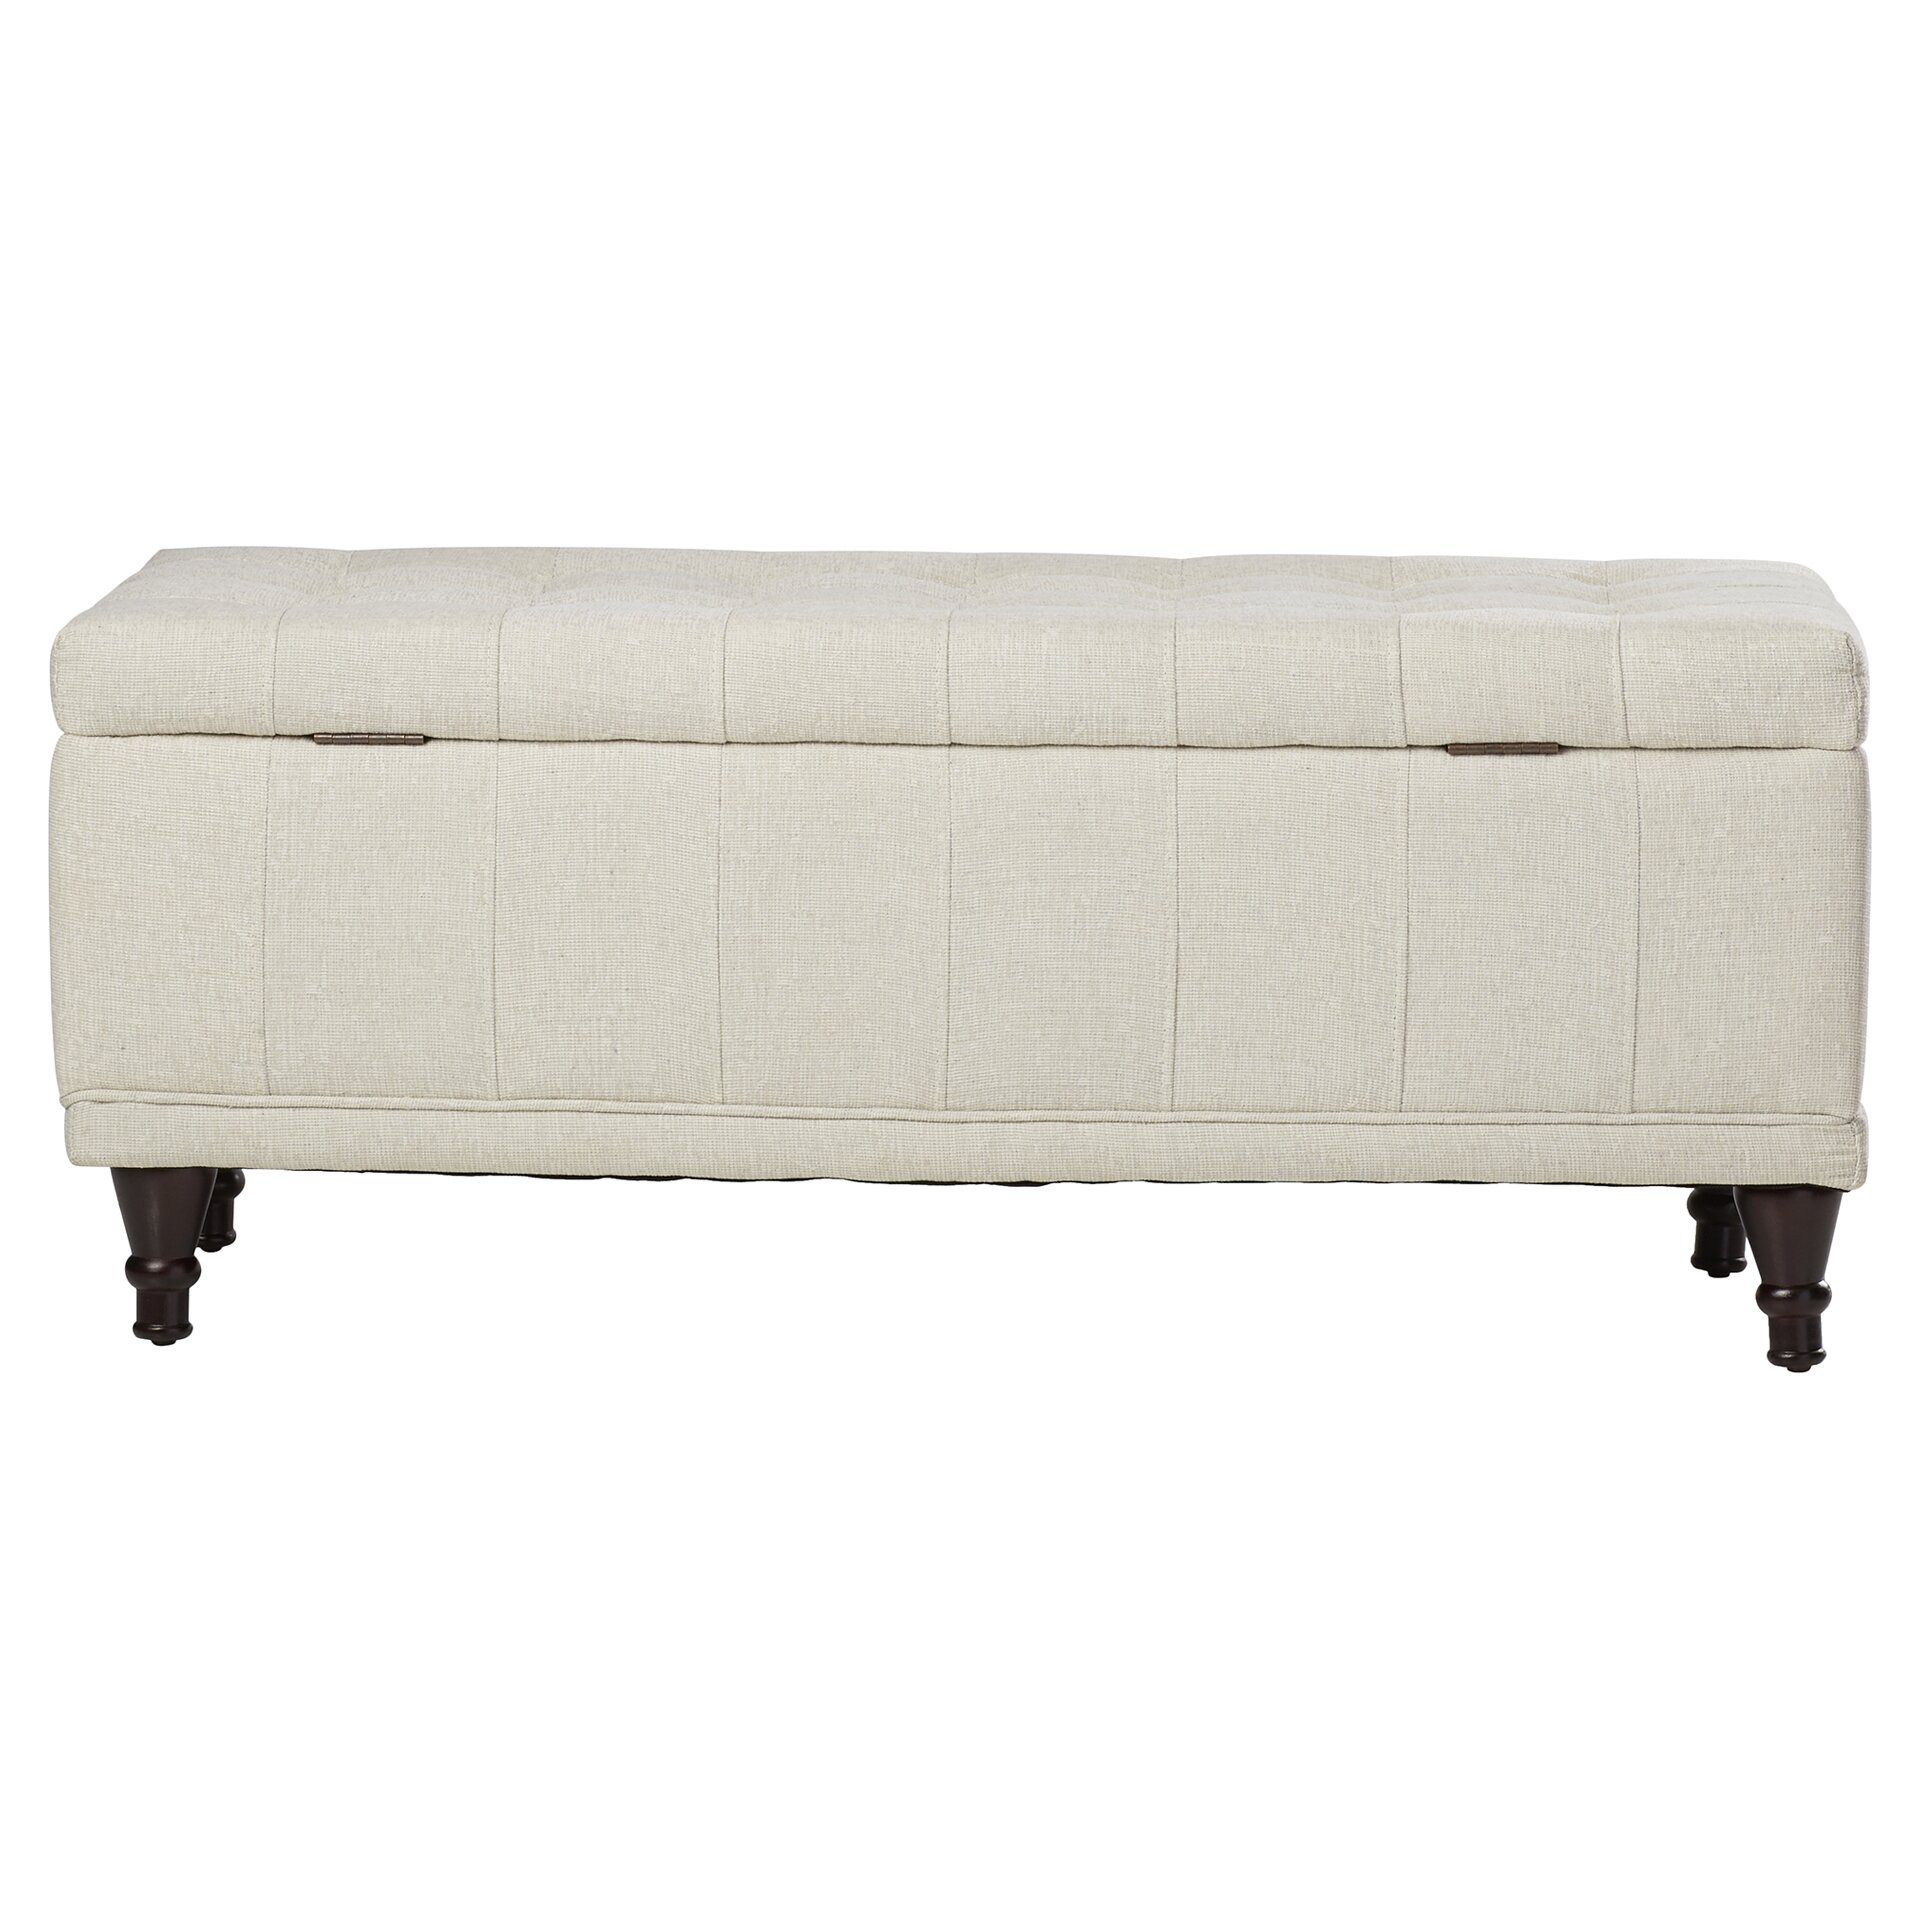 attles fabric bedroom storage ottoman wayfair